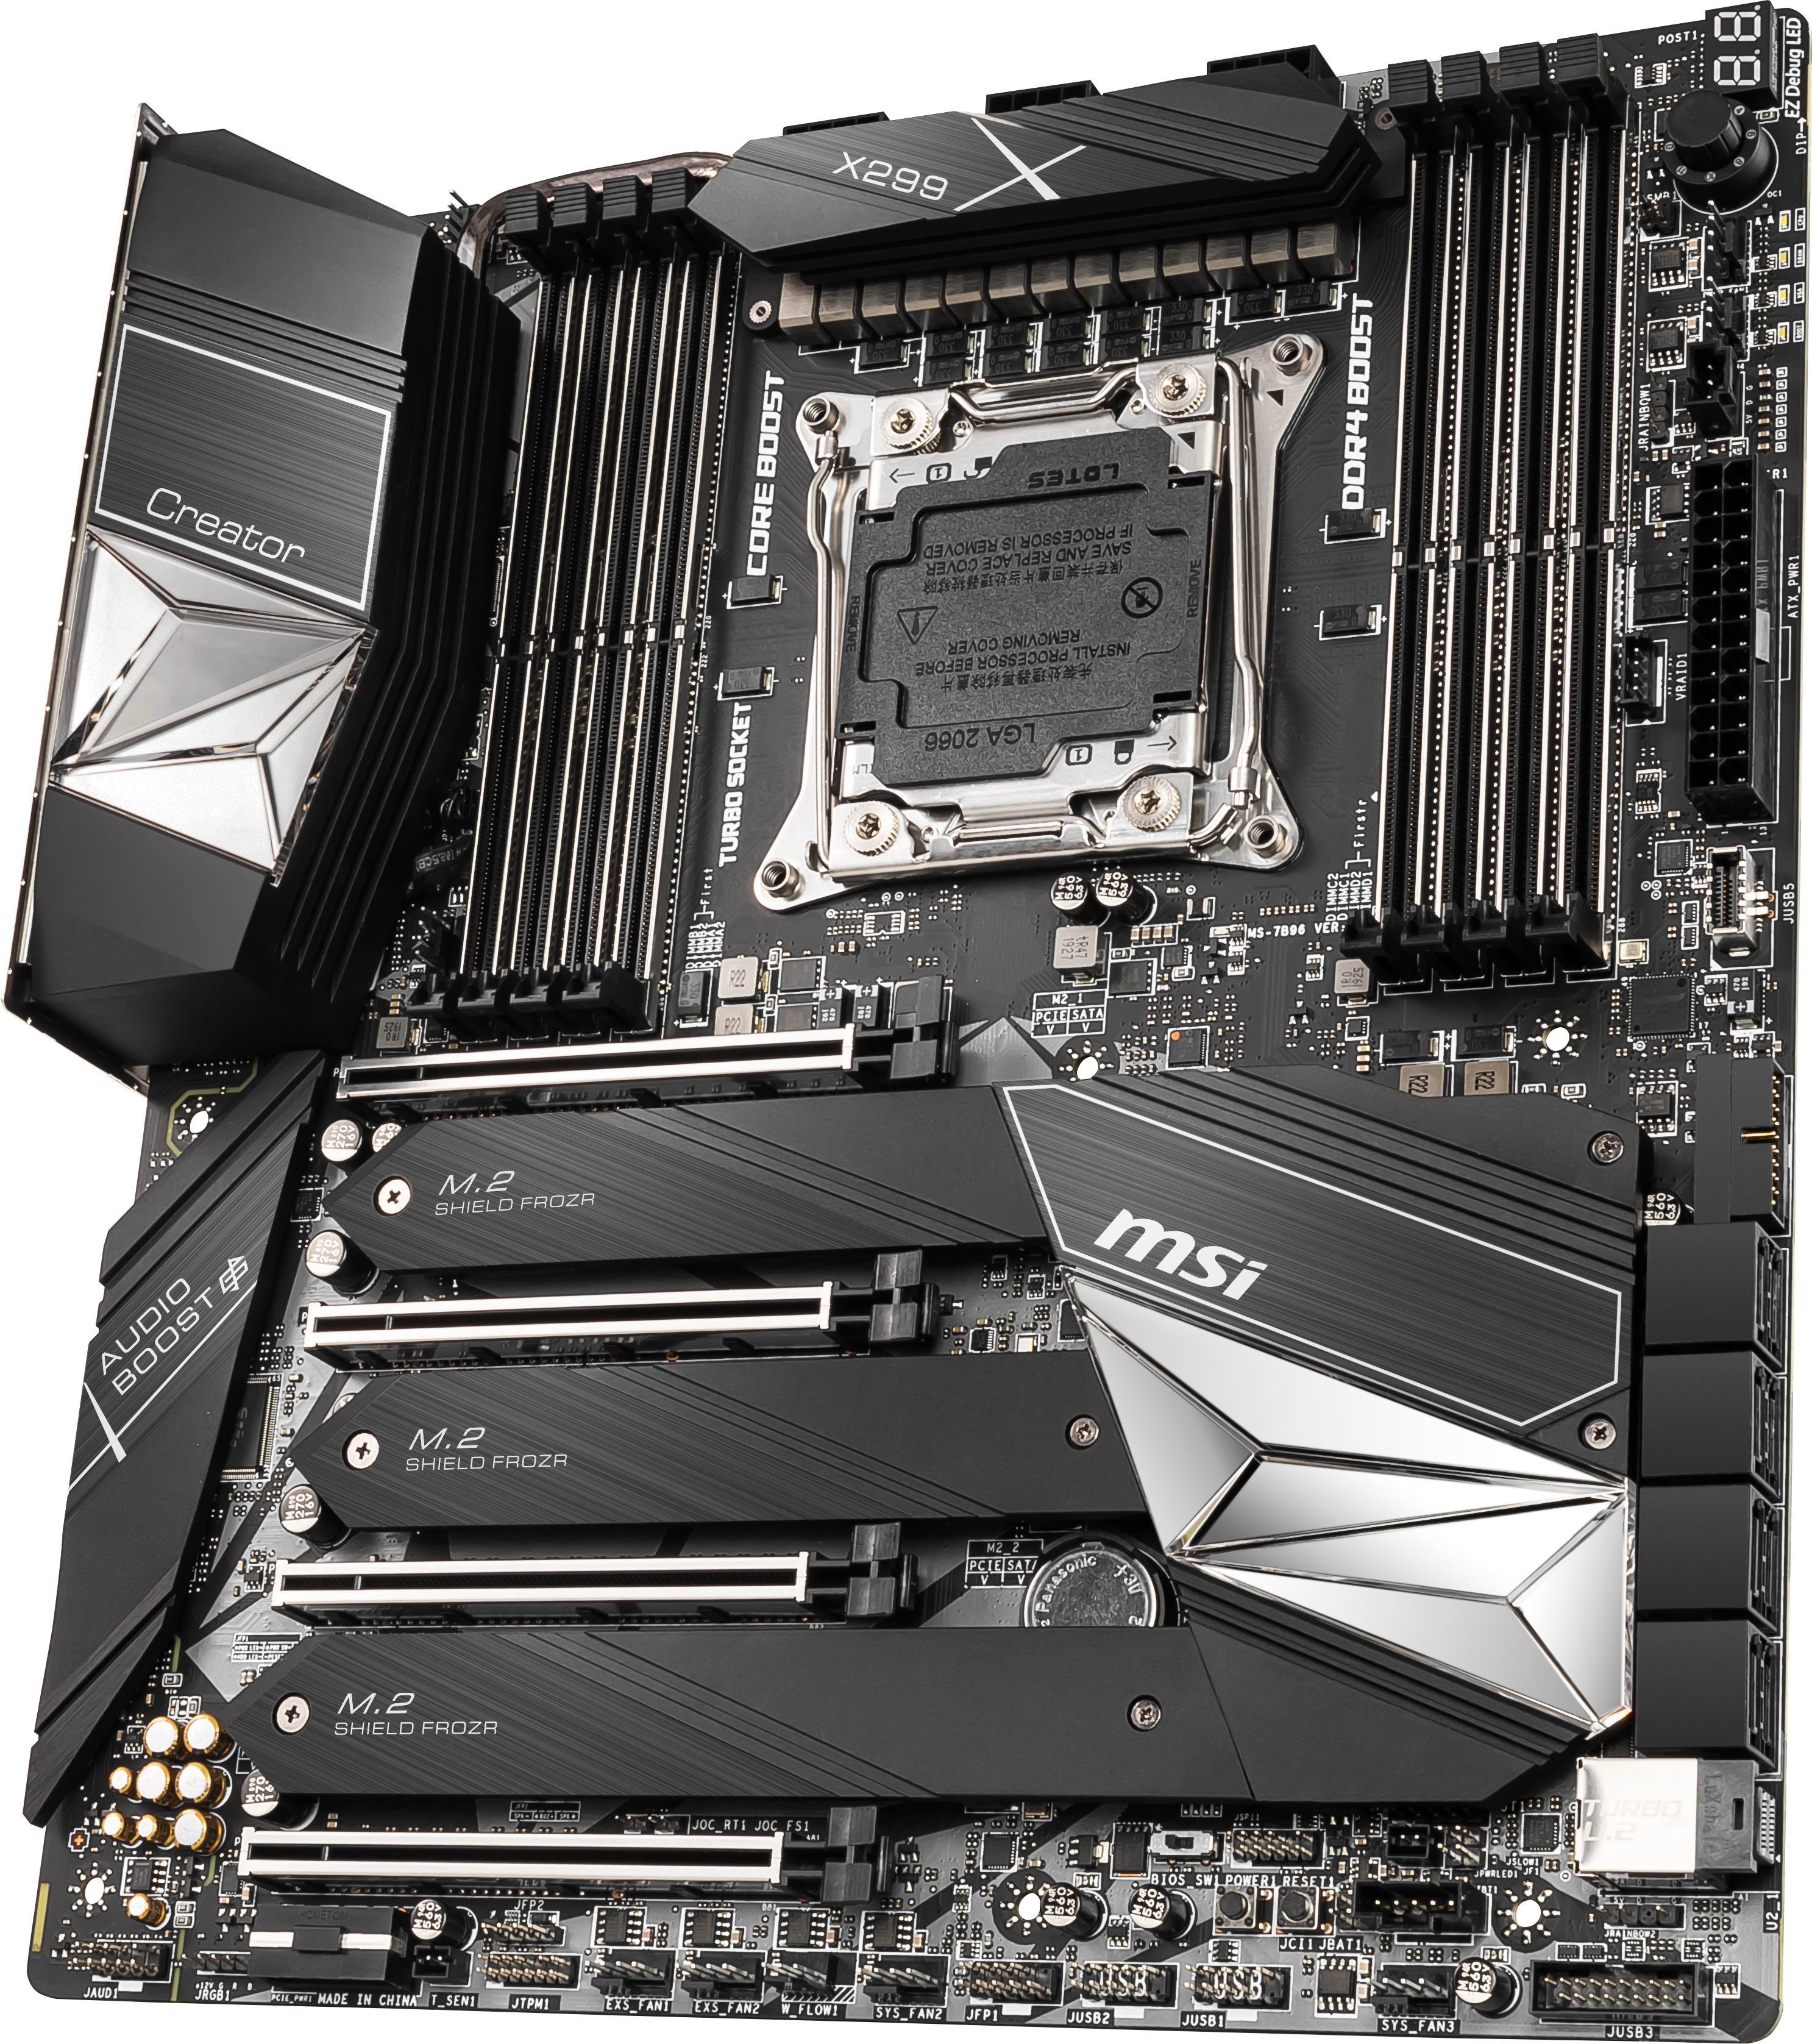 MSI's Motherboard Refresh for Cascade: Three New